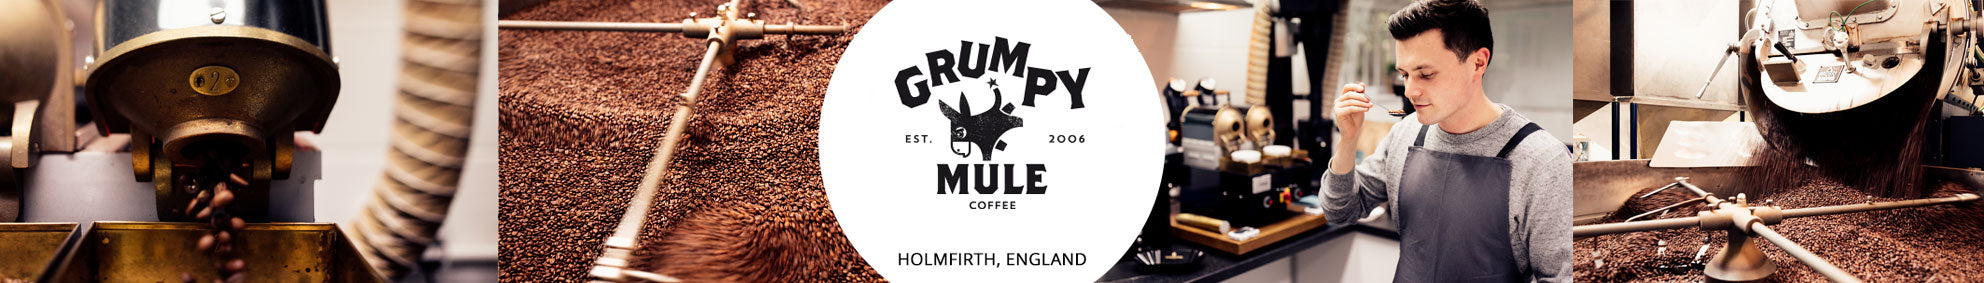 Grumpy Mule Speciality Coffee Roasters Yorkshire